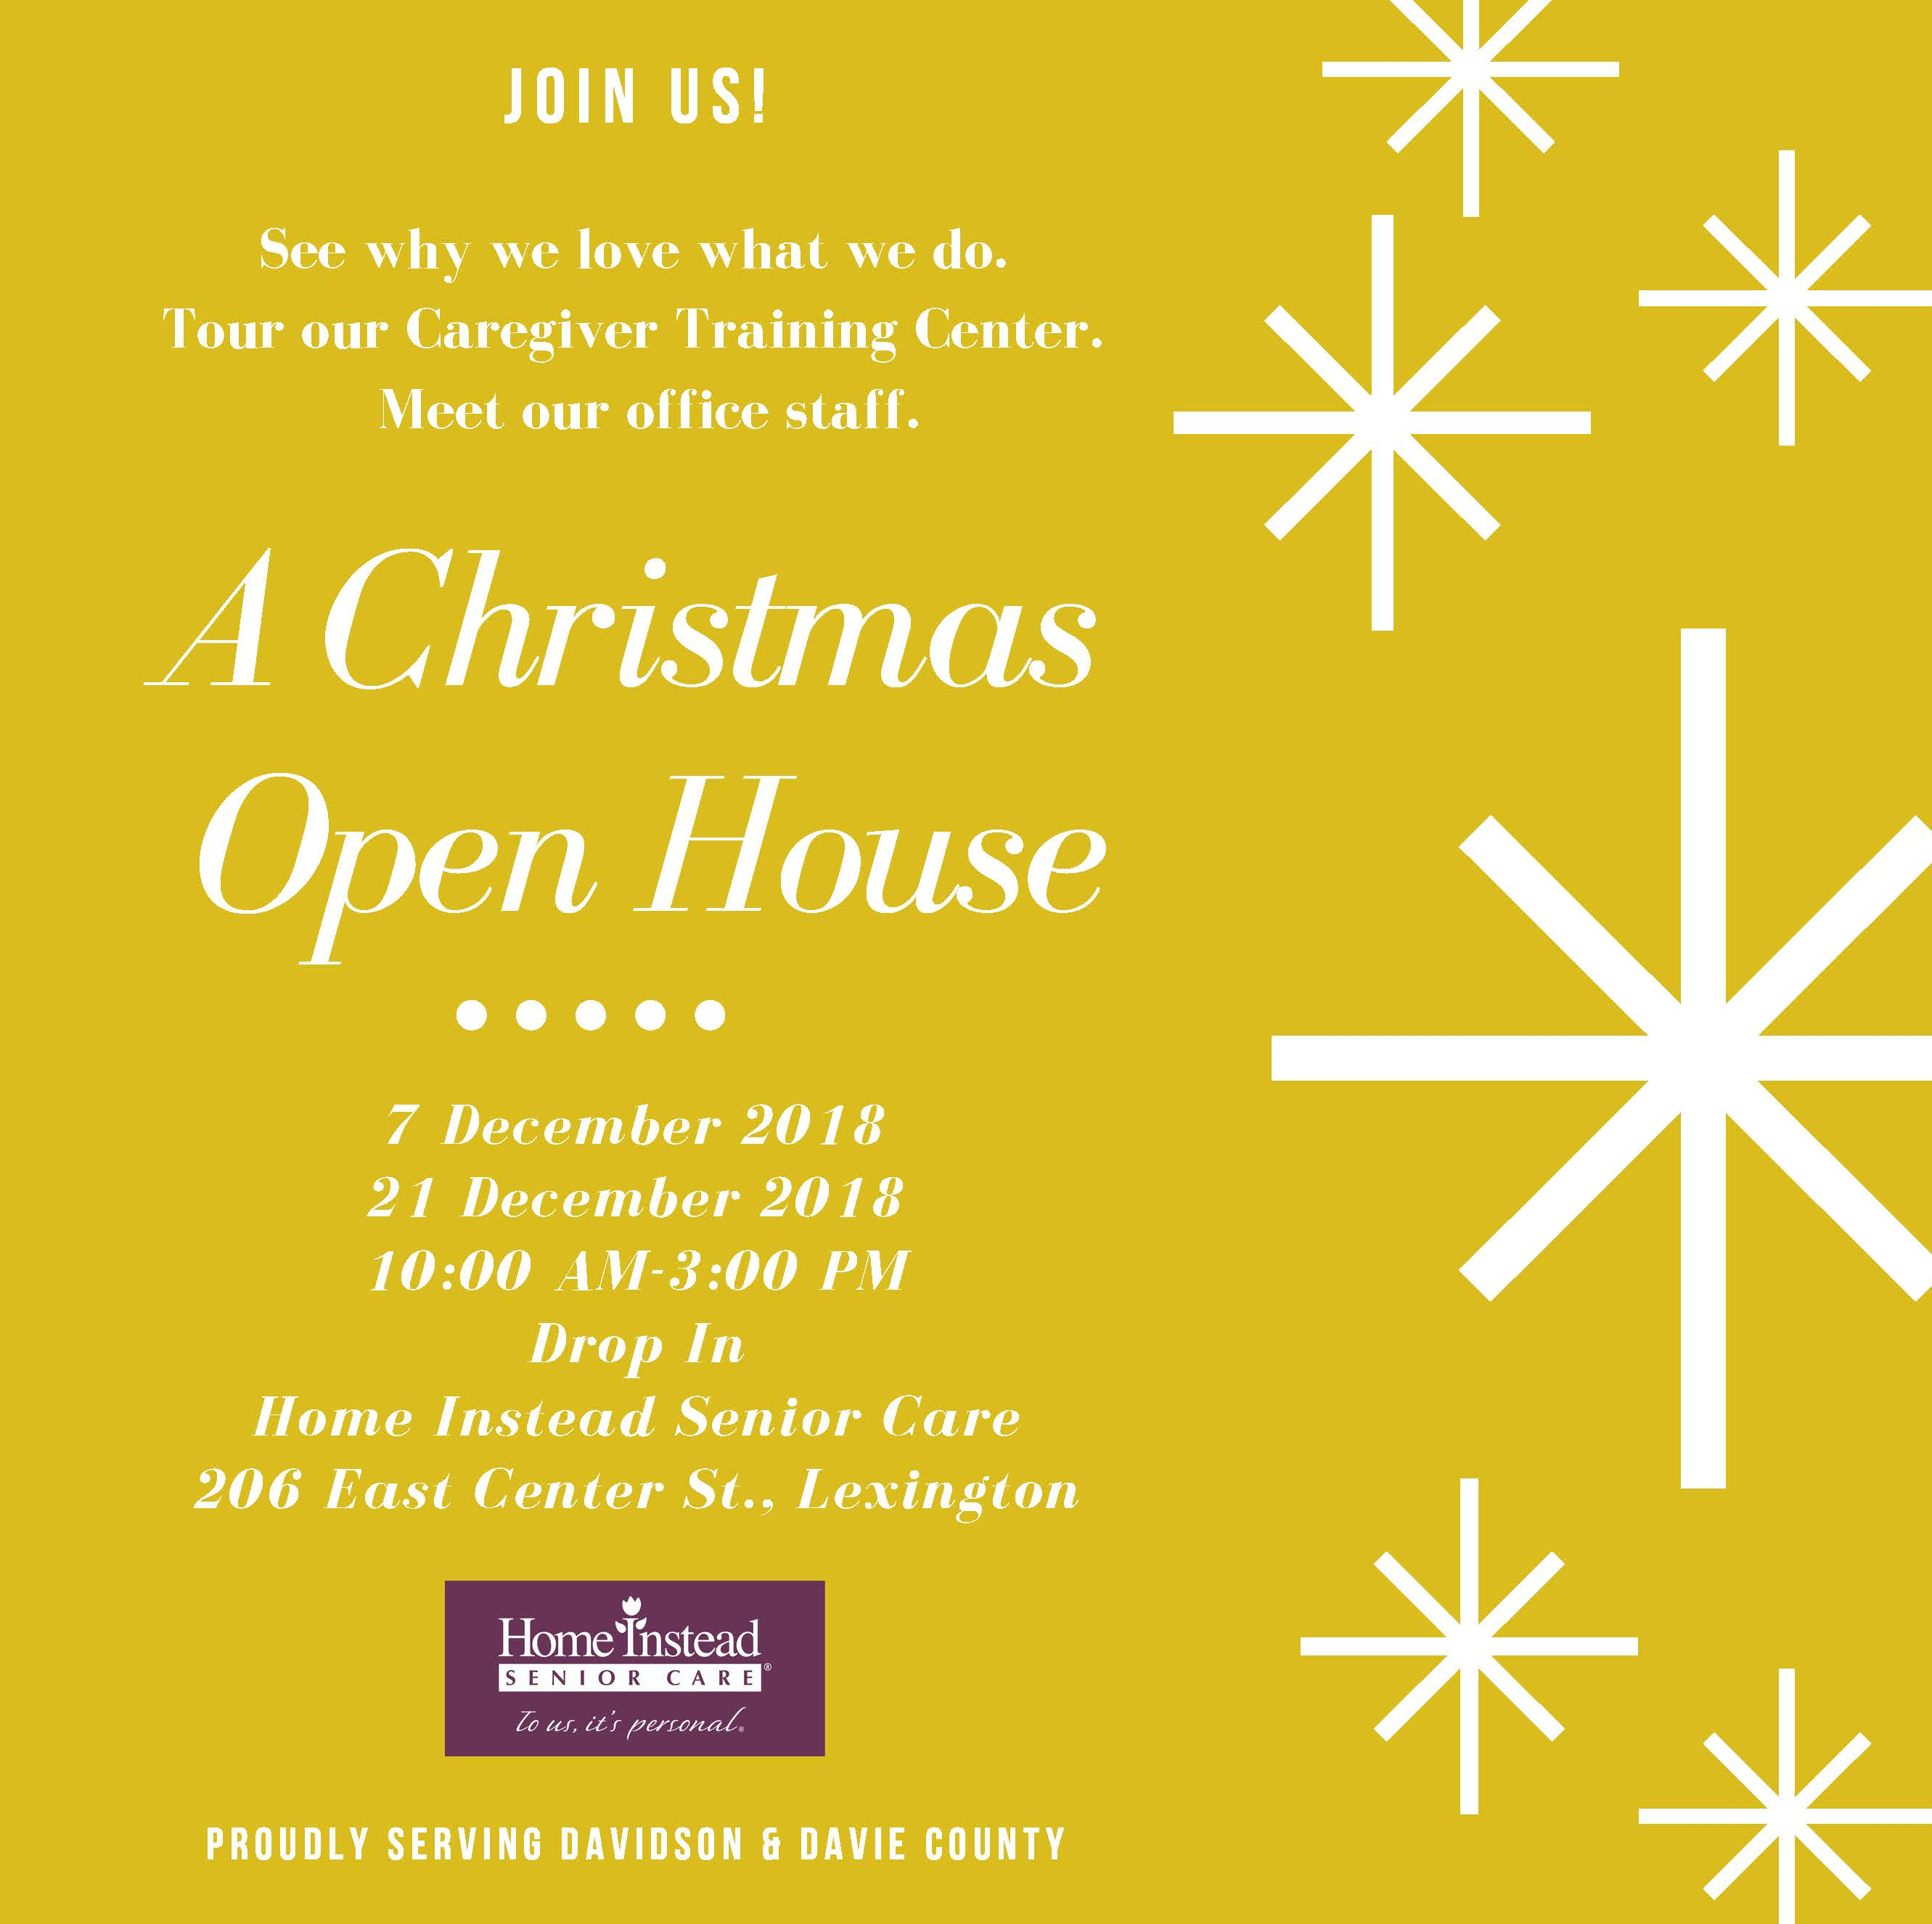 Home Instead Senior Care Christmas Open House